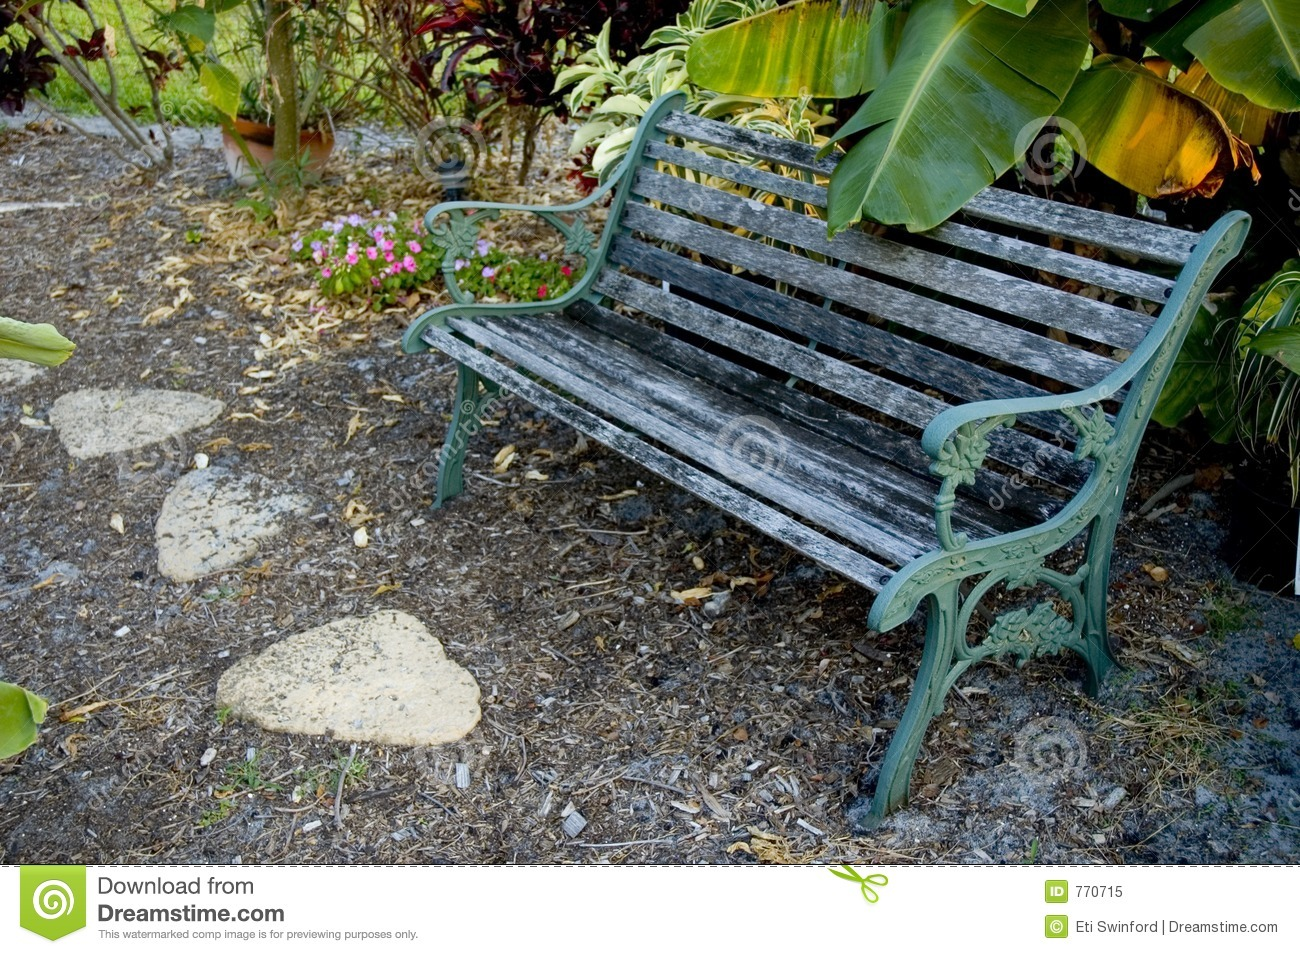 Awesome banc de jardin trigano pictures for Banc de jardin en fonte